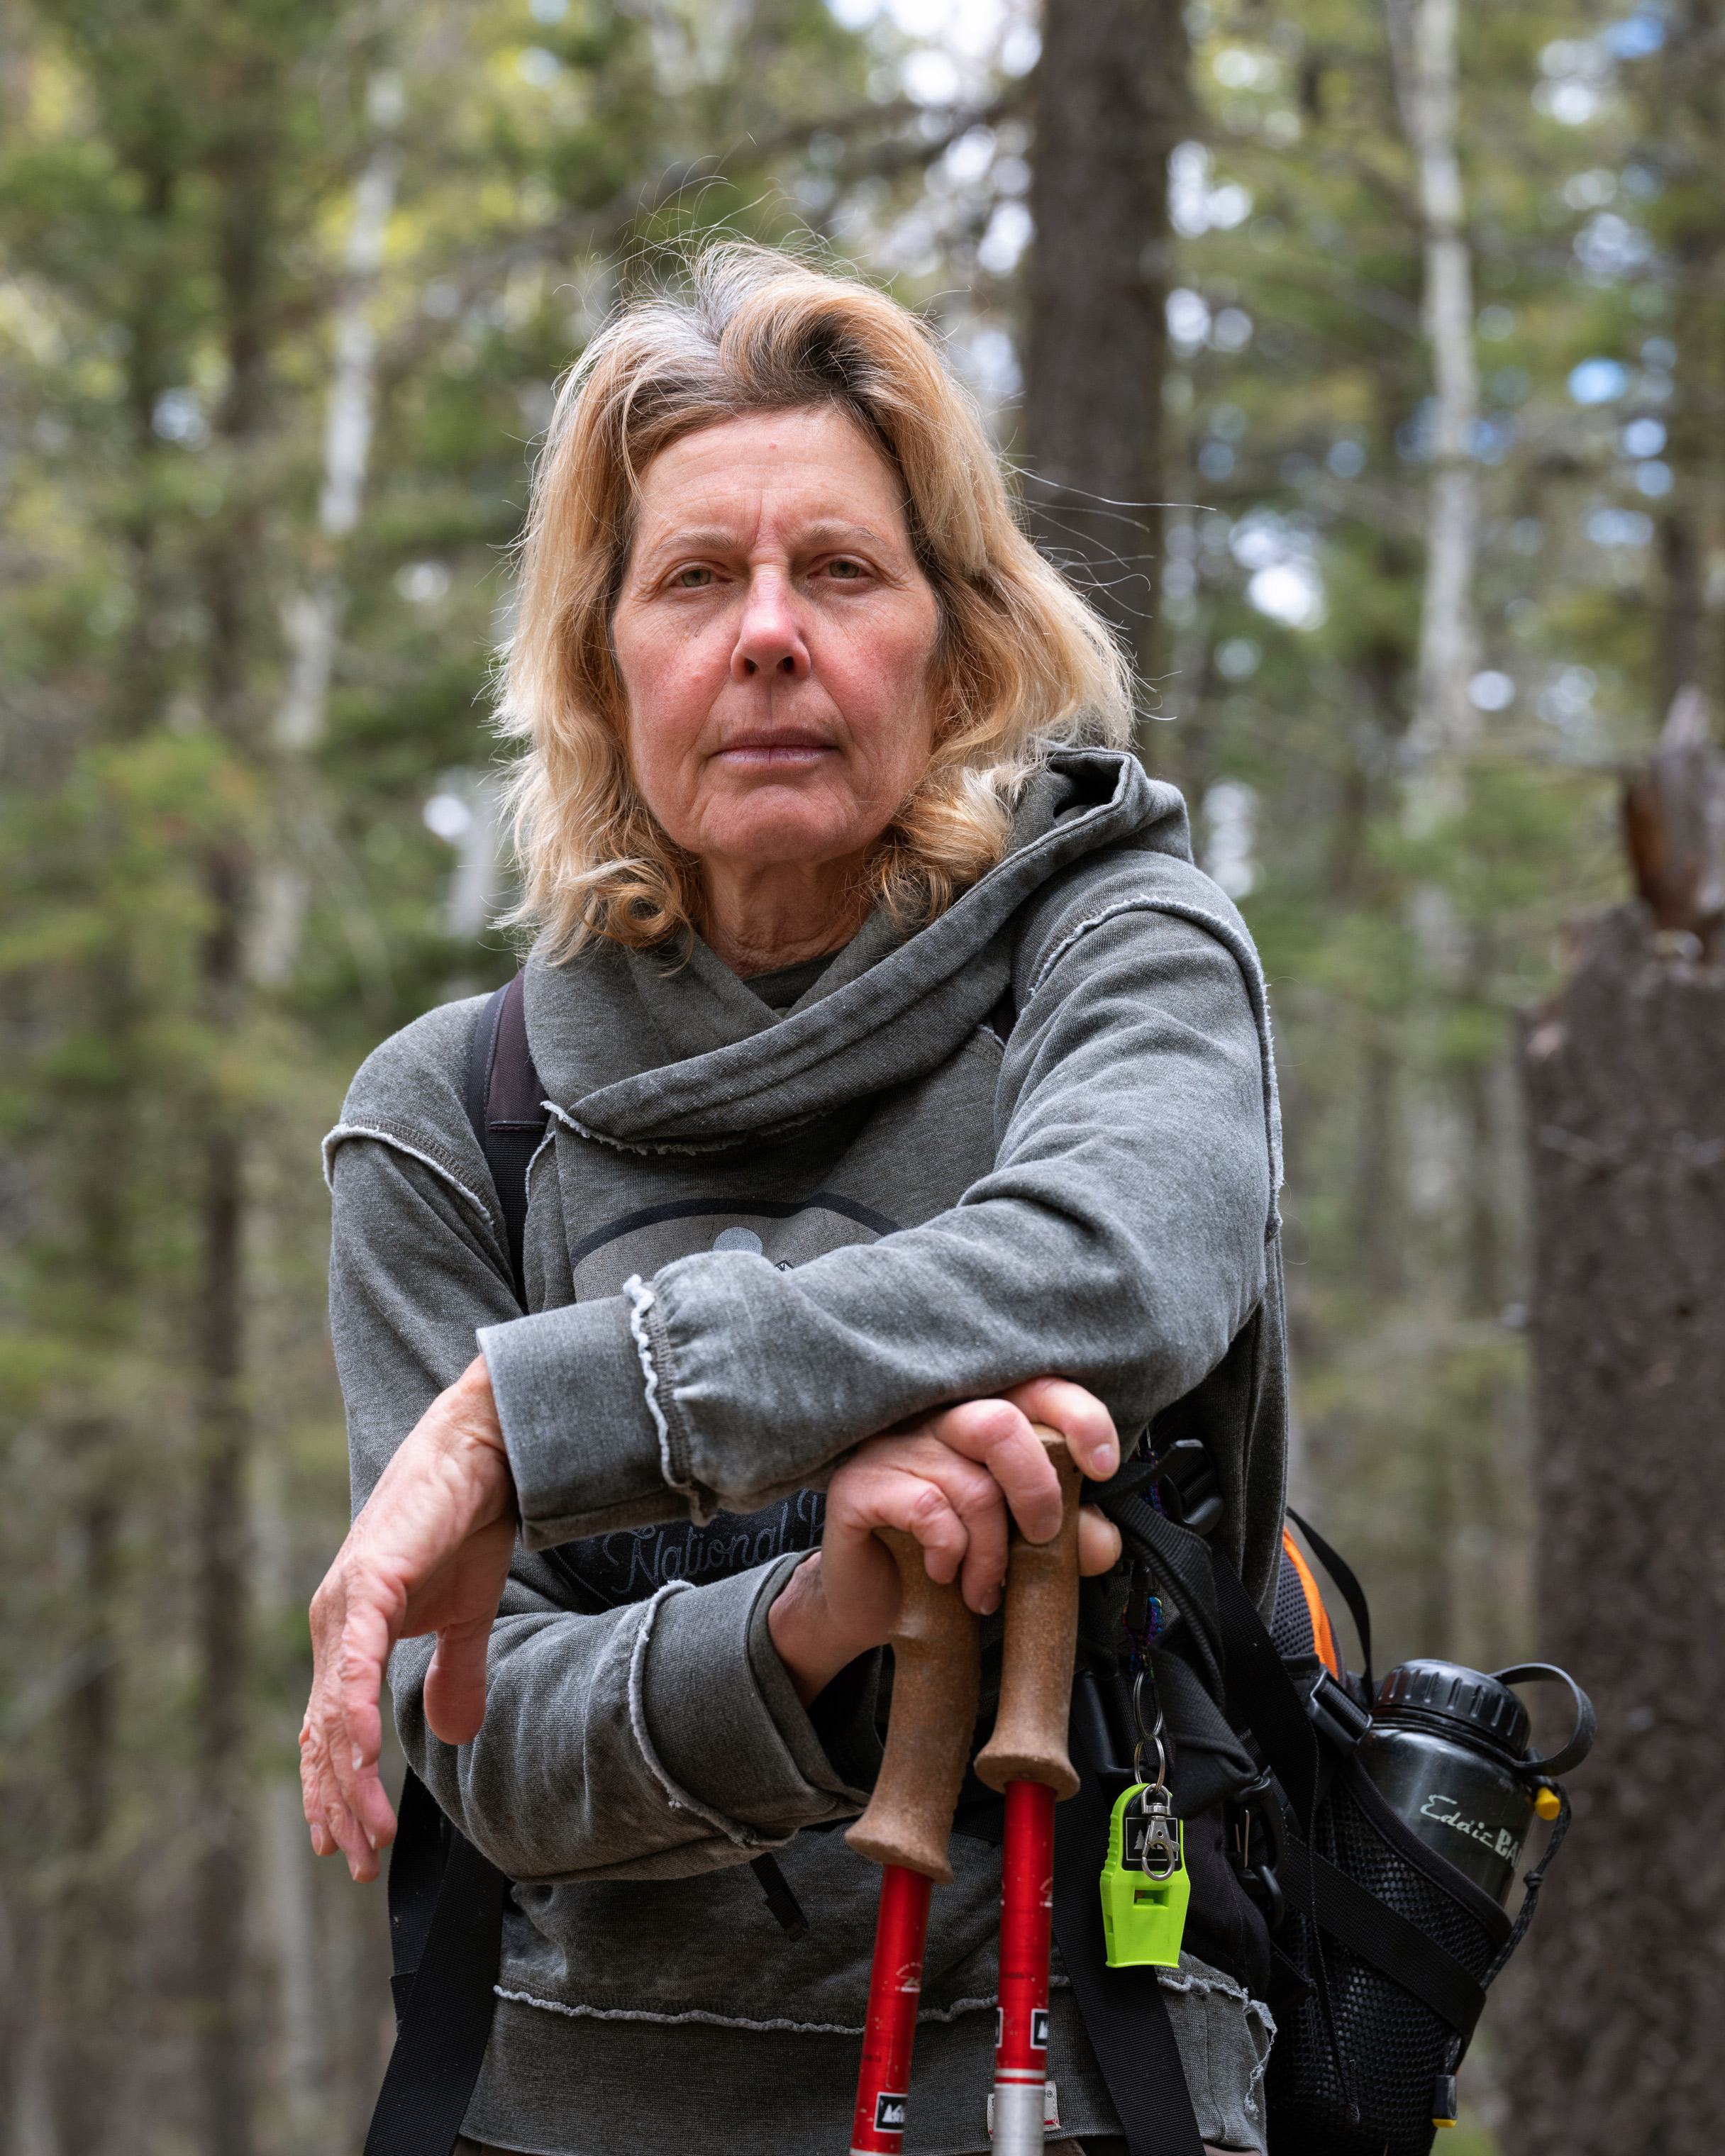 Cynthia Meachum in the Pecos Wilderness, May 28, 2019.